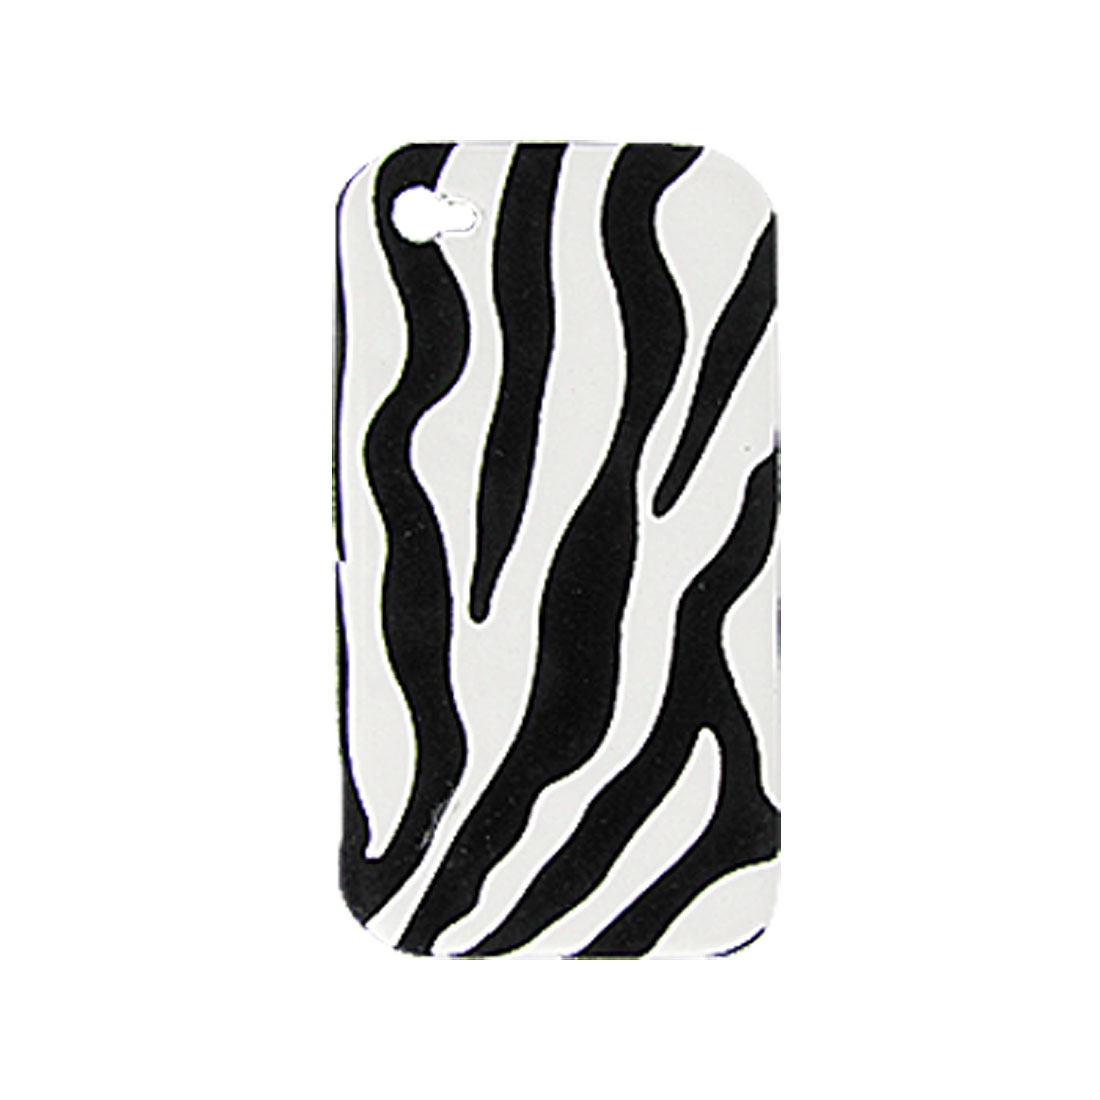 Zebra Printed White Black Plastic Back Cover for iPhone 4